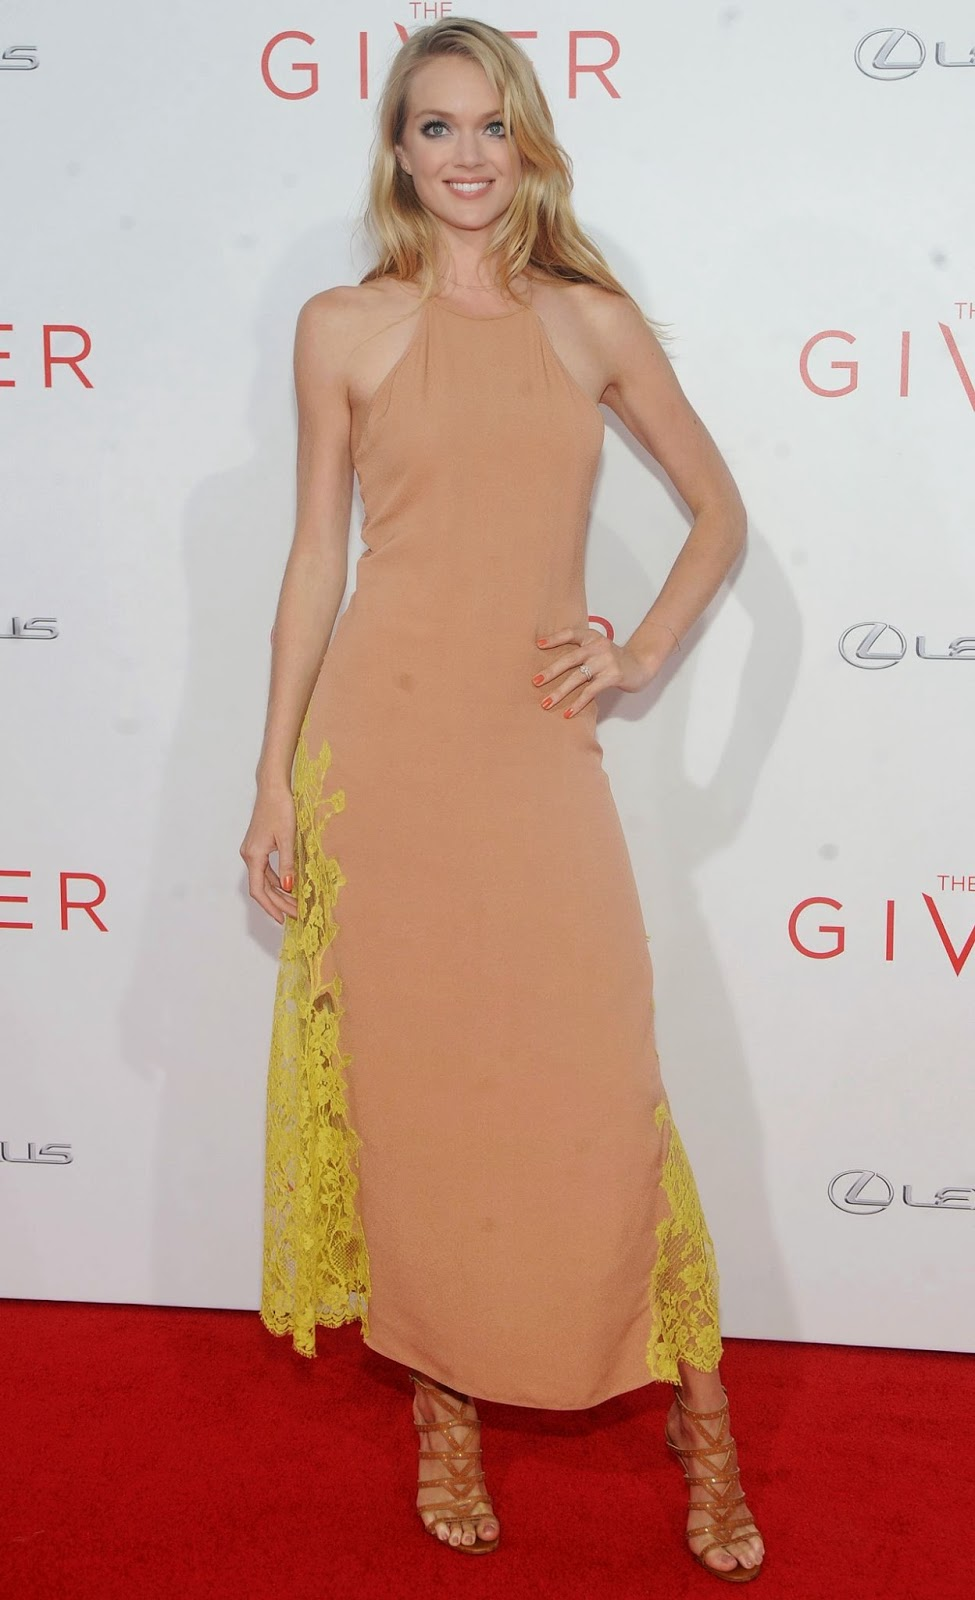 Lindsay Ellingson flaunts a Wes Gordon halter dress at 'The Giver' NYC Premiere